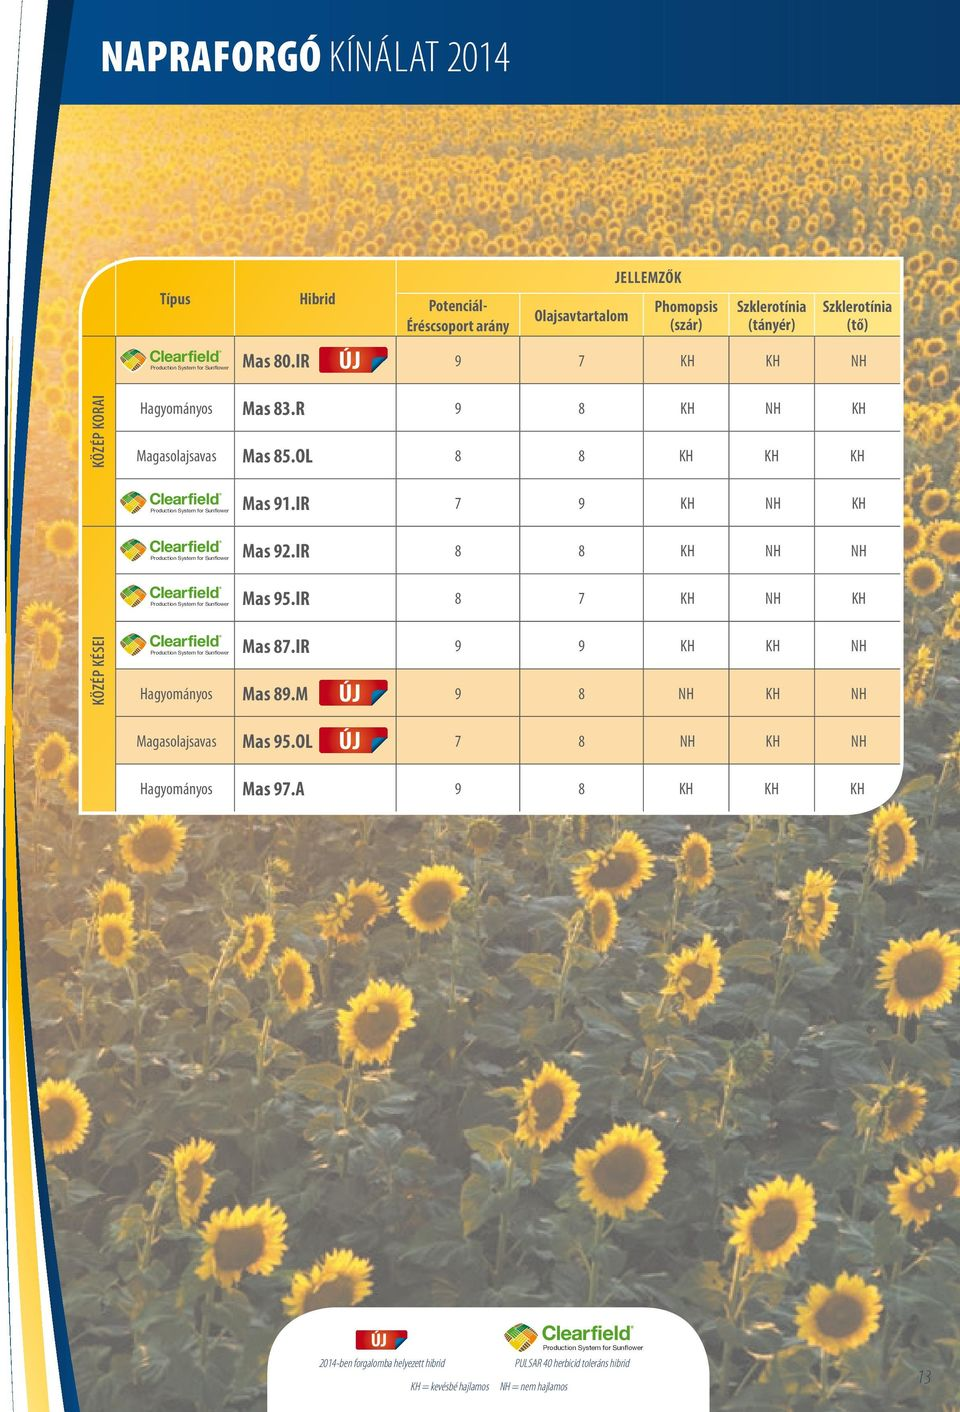 L 8 8 K K K Production System for Sunflower Production System for Sunflower Production System for Sunflower Production System for Sunflower Mas 91.IR 7 9 K N K Mas 92.